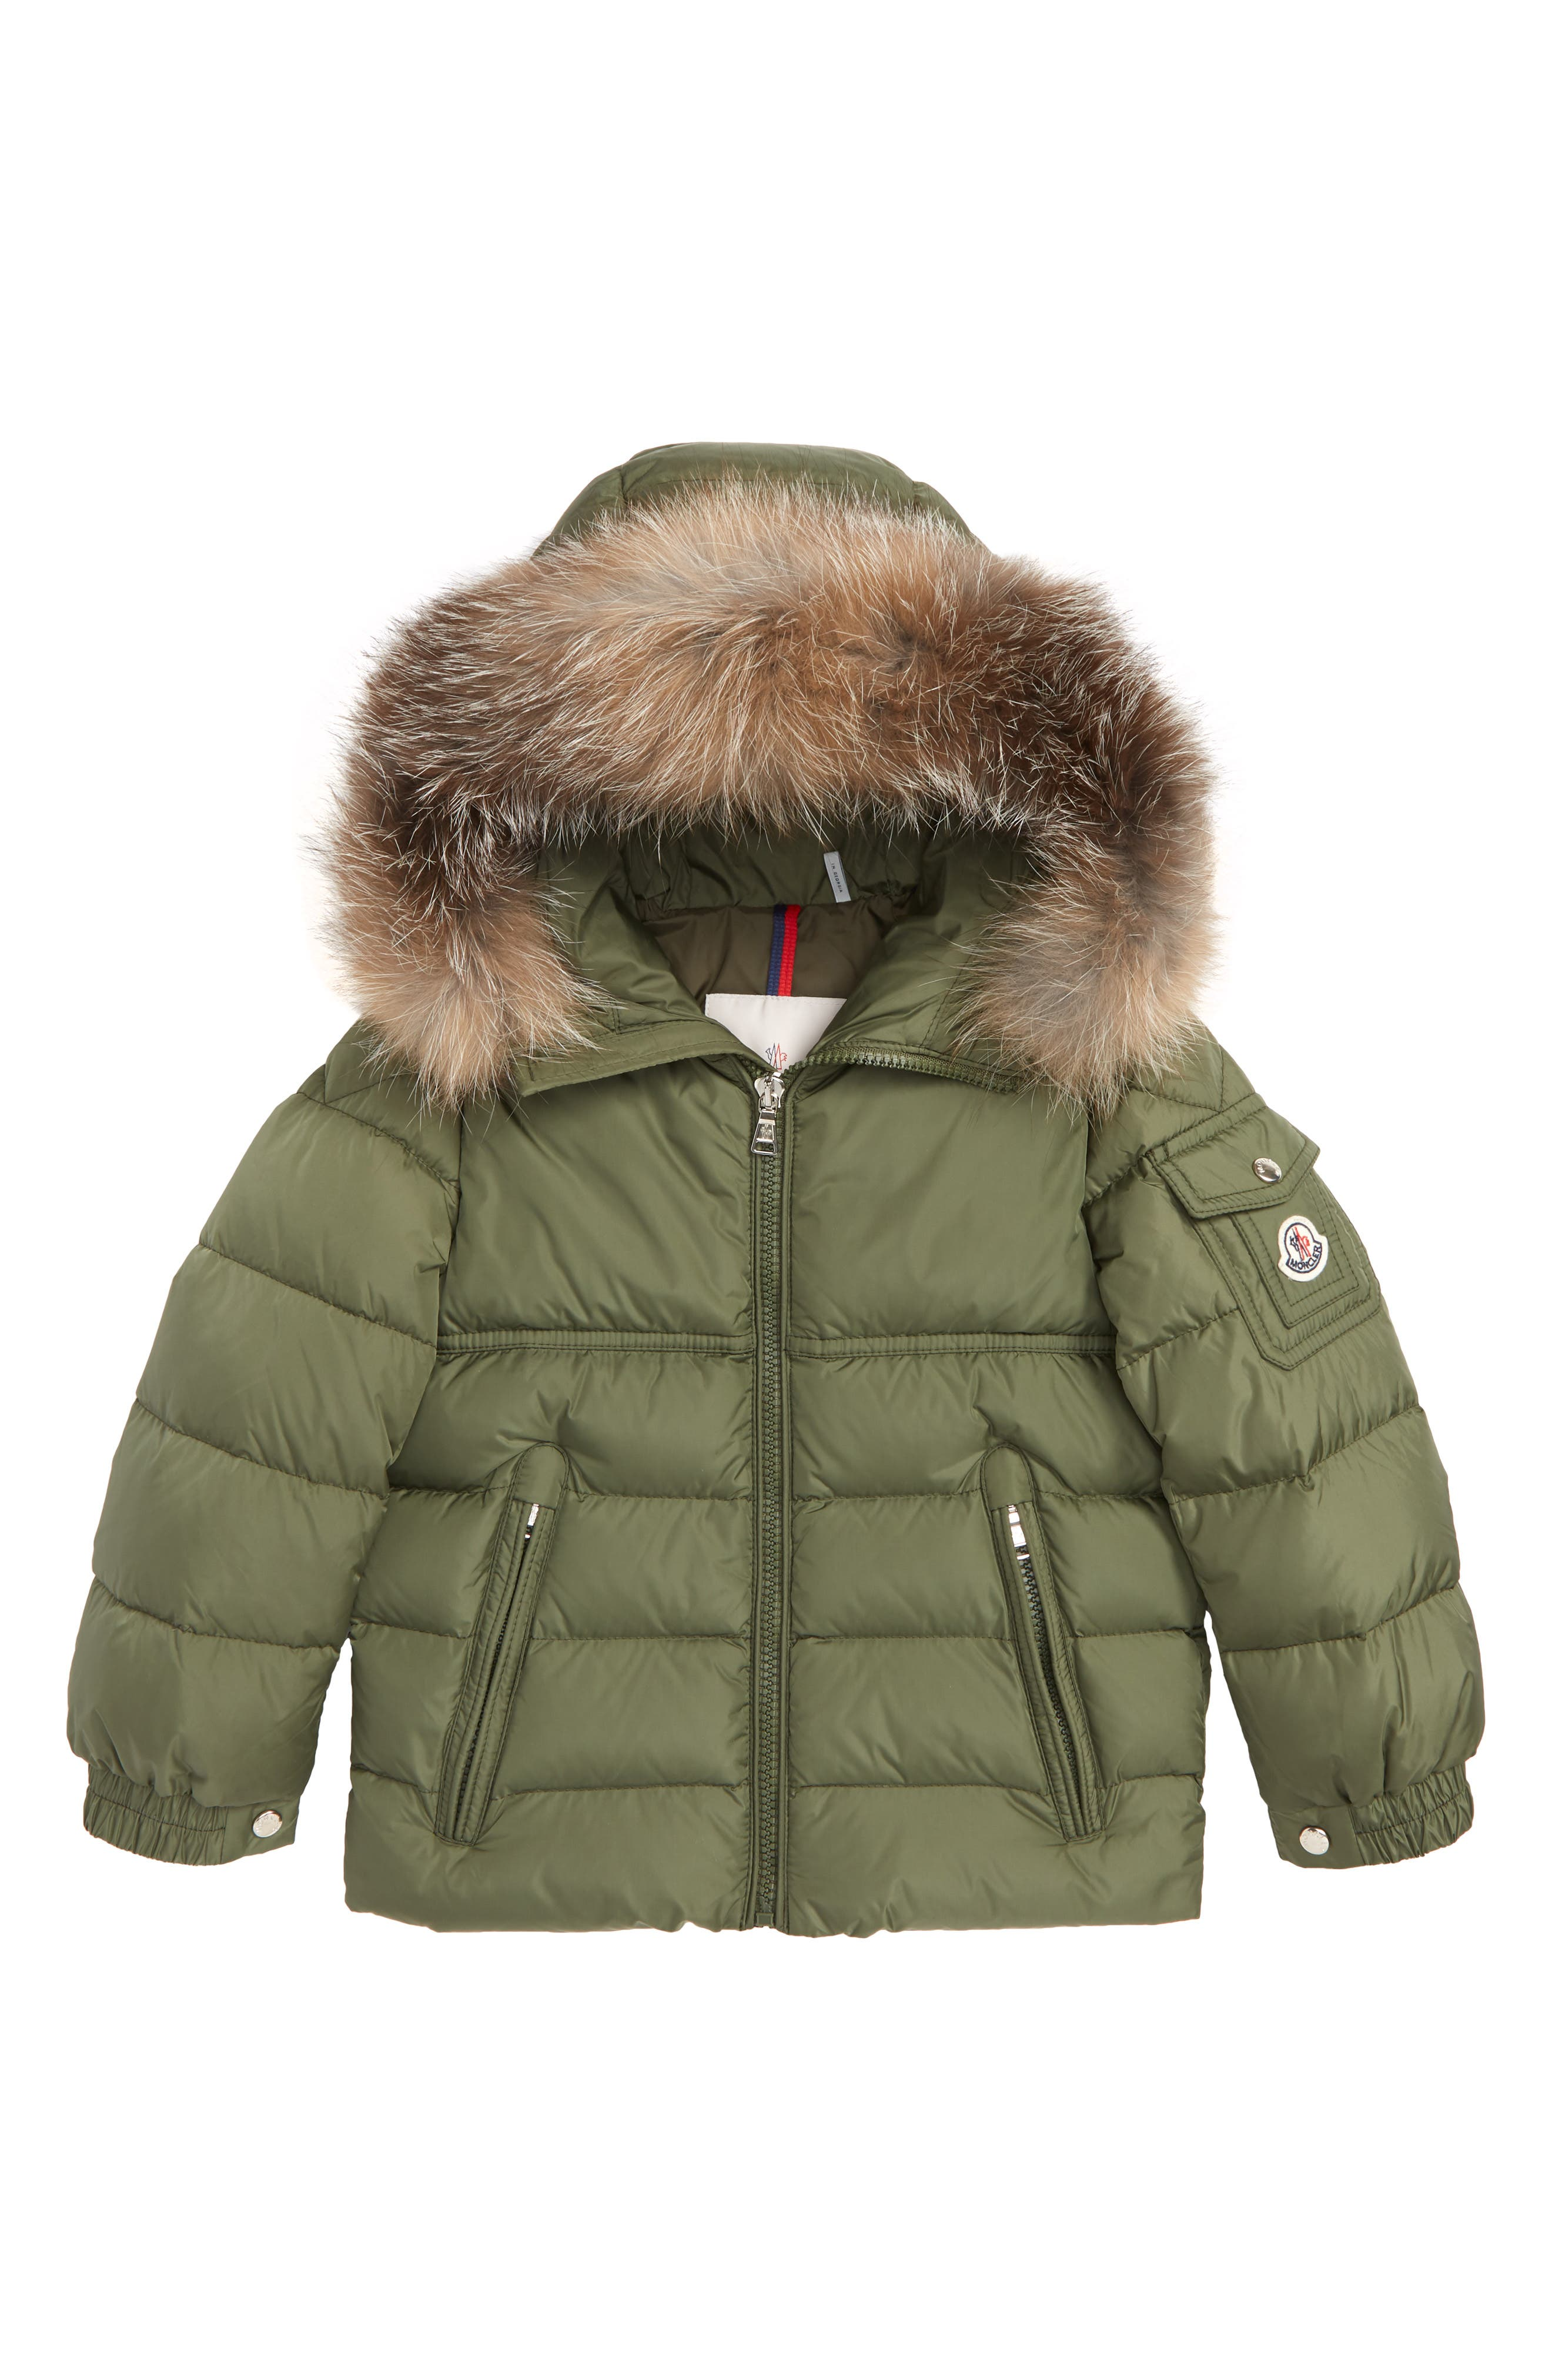 Byron Water Resistant Down Jacket with Genuine Fox Fur Trim,                             Main thumbnail 1, color,                             ARMY GREEN